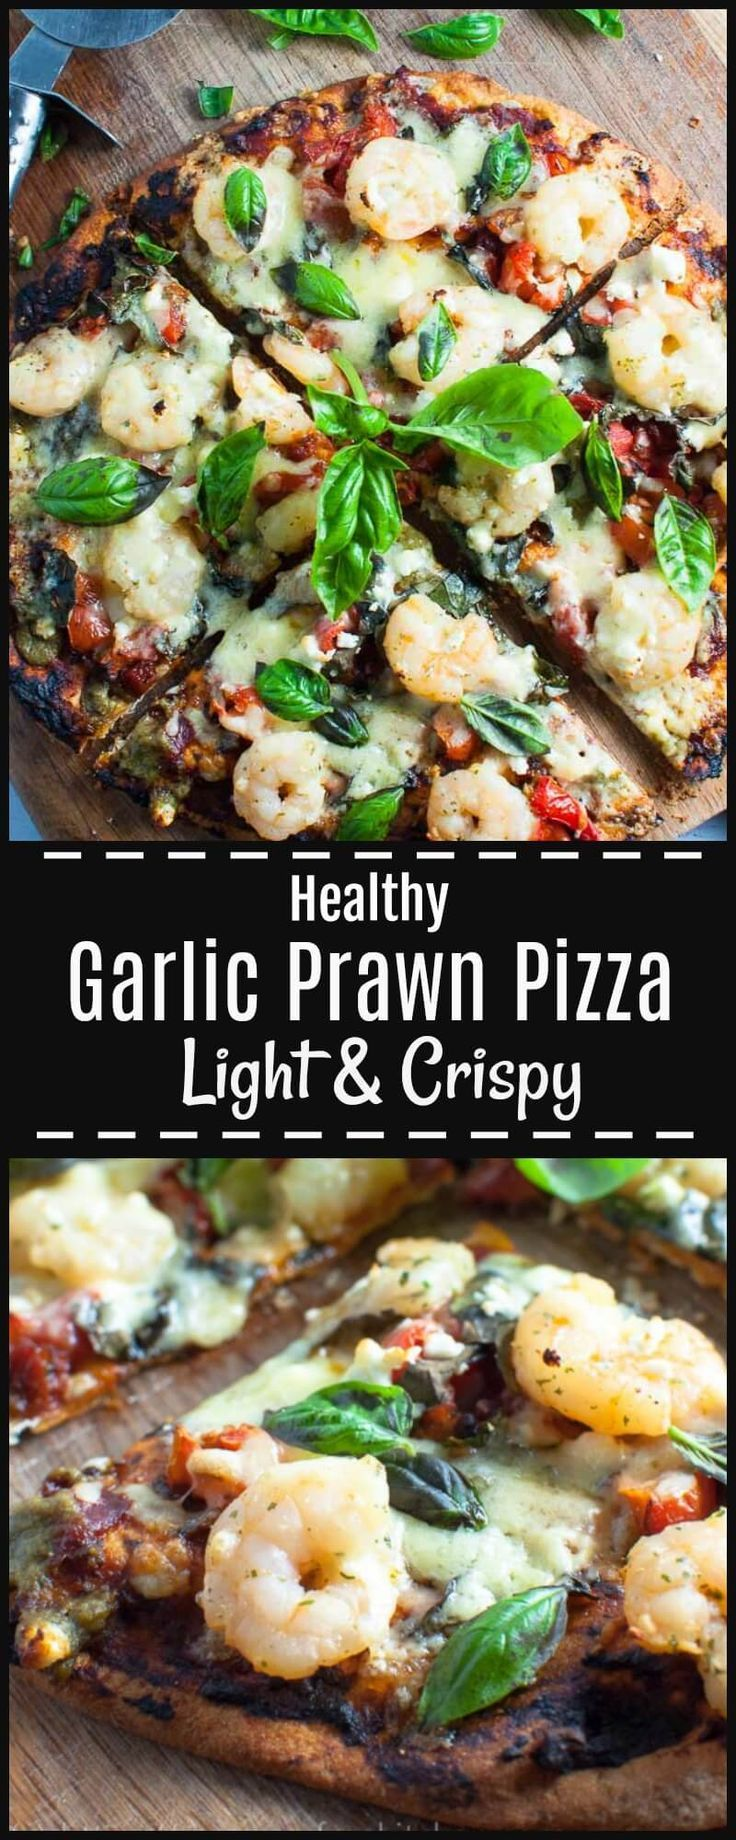 Garlic Prawn Pizza with crispy, crunchy base with tangy sundried tomato pesto and tomato paste, with juicy garlic butter prawns, basil and fetta, & a touch of basil pesto.